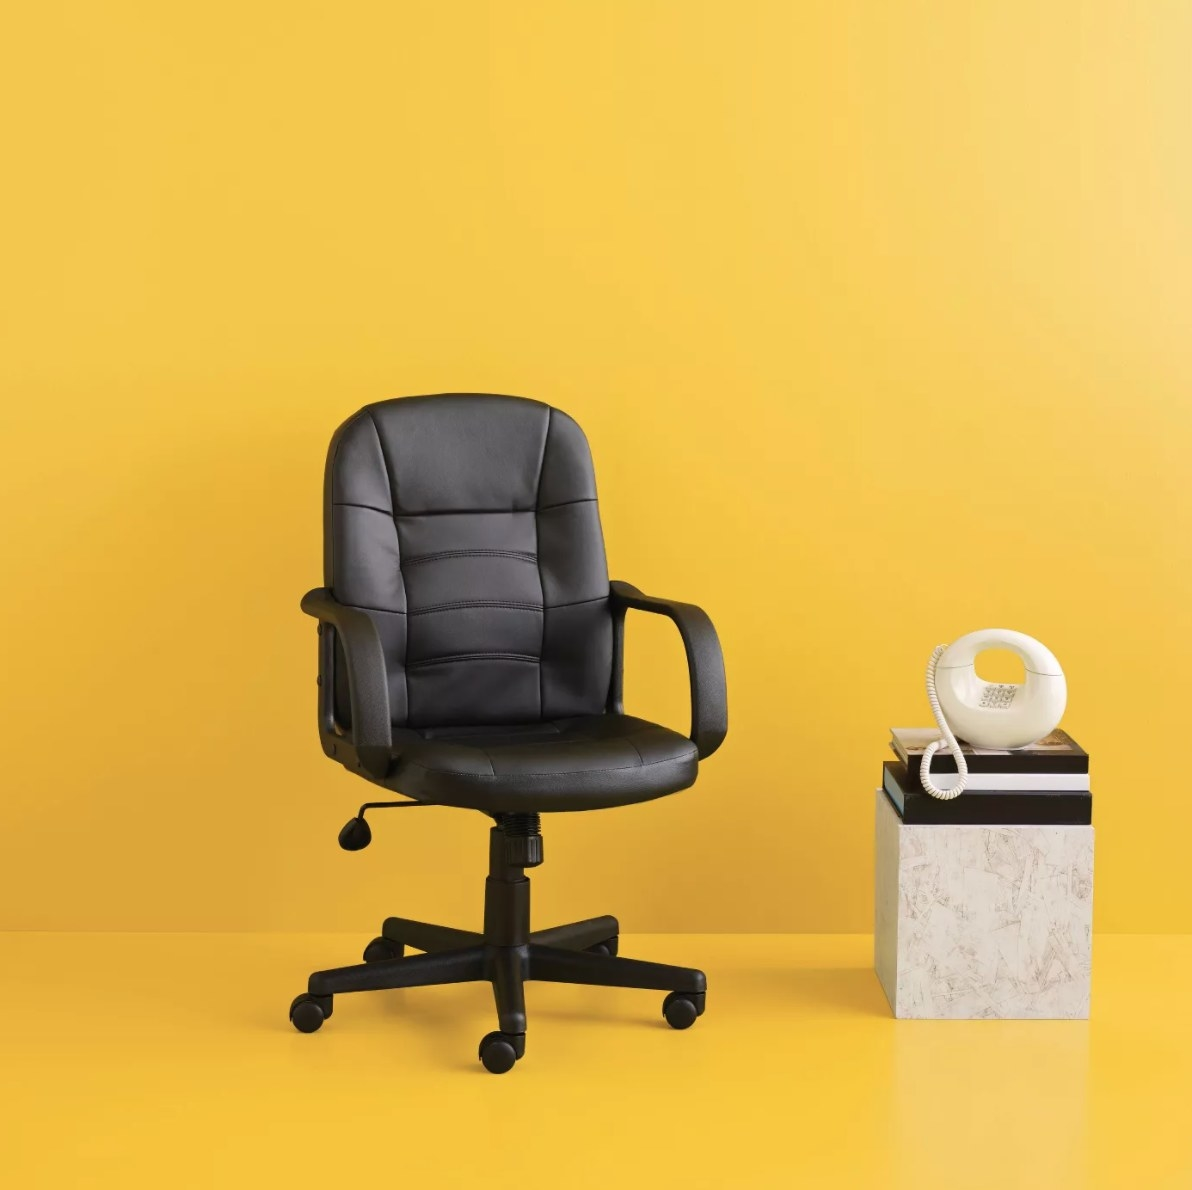 The leather office chair on a yellow backdrop